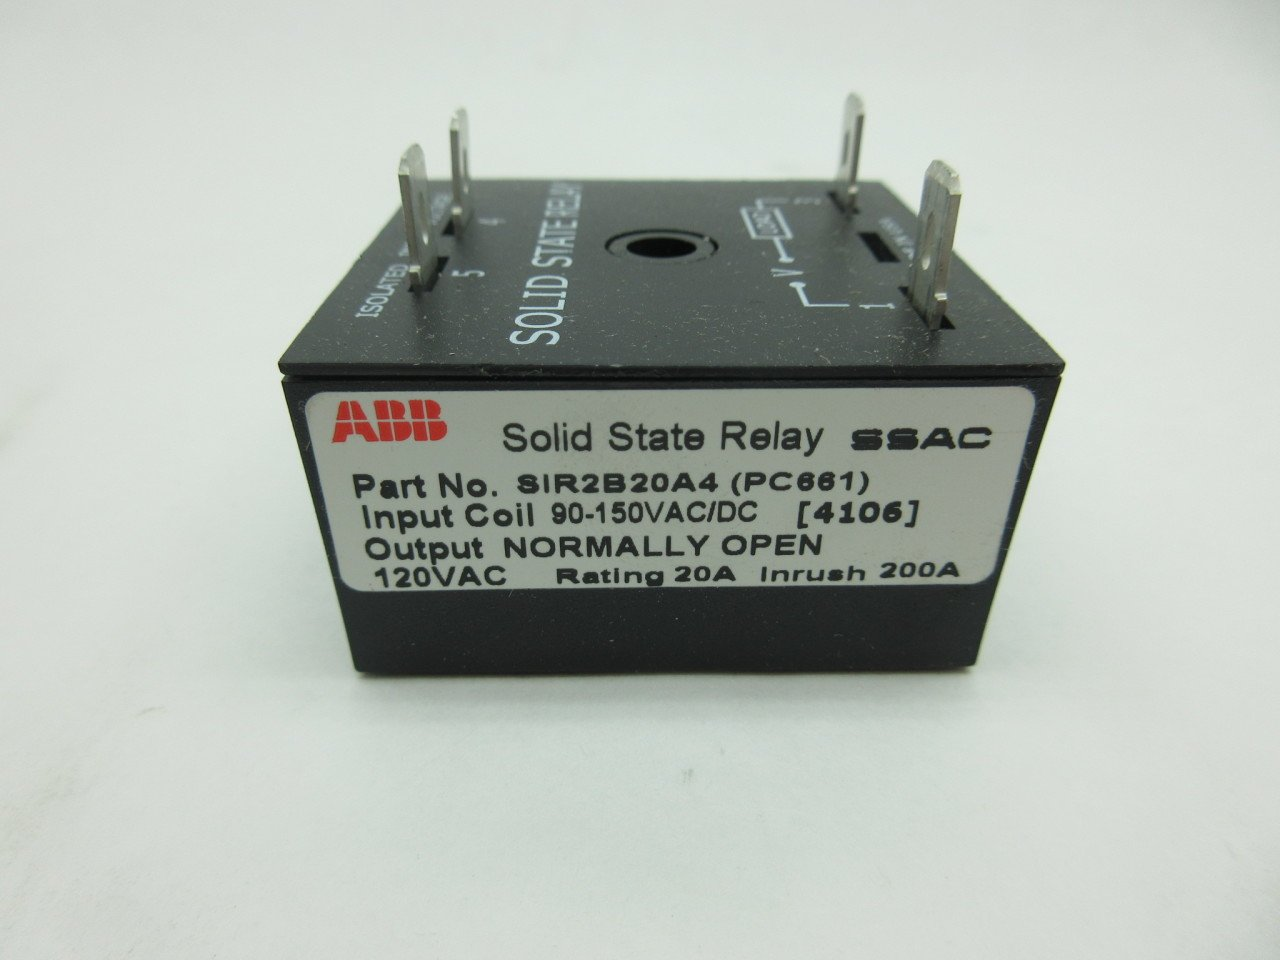 NEW ABB SIR2B20A4 PC661 SSAC SOLID STATE RELAY 90150VACDC D584148